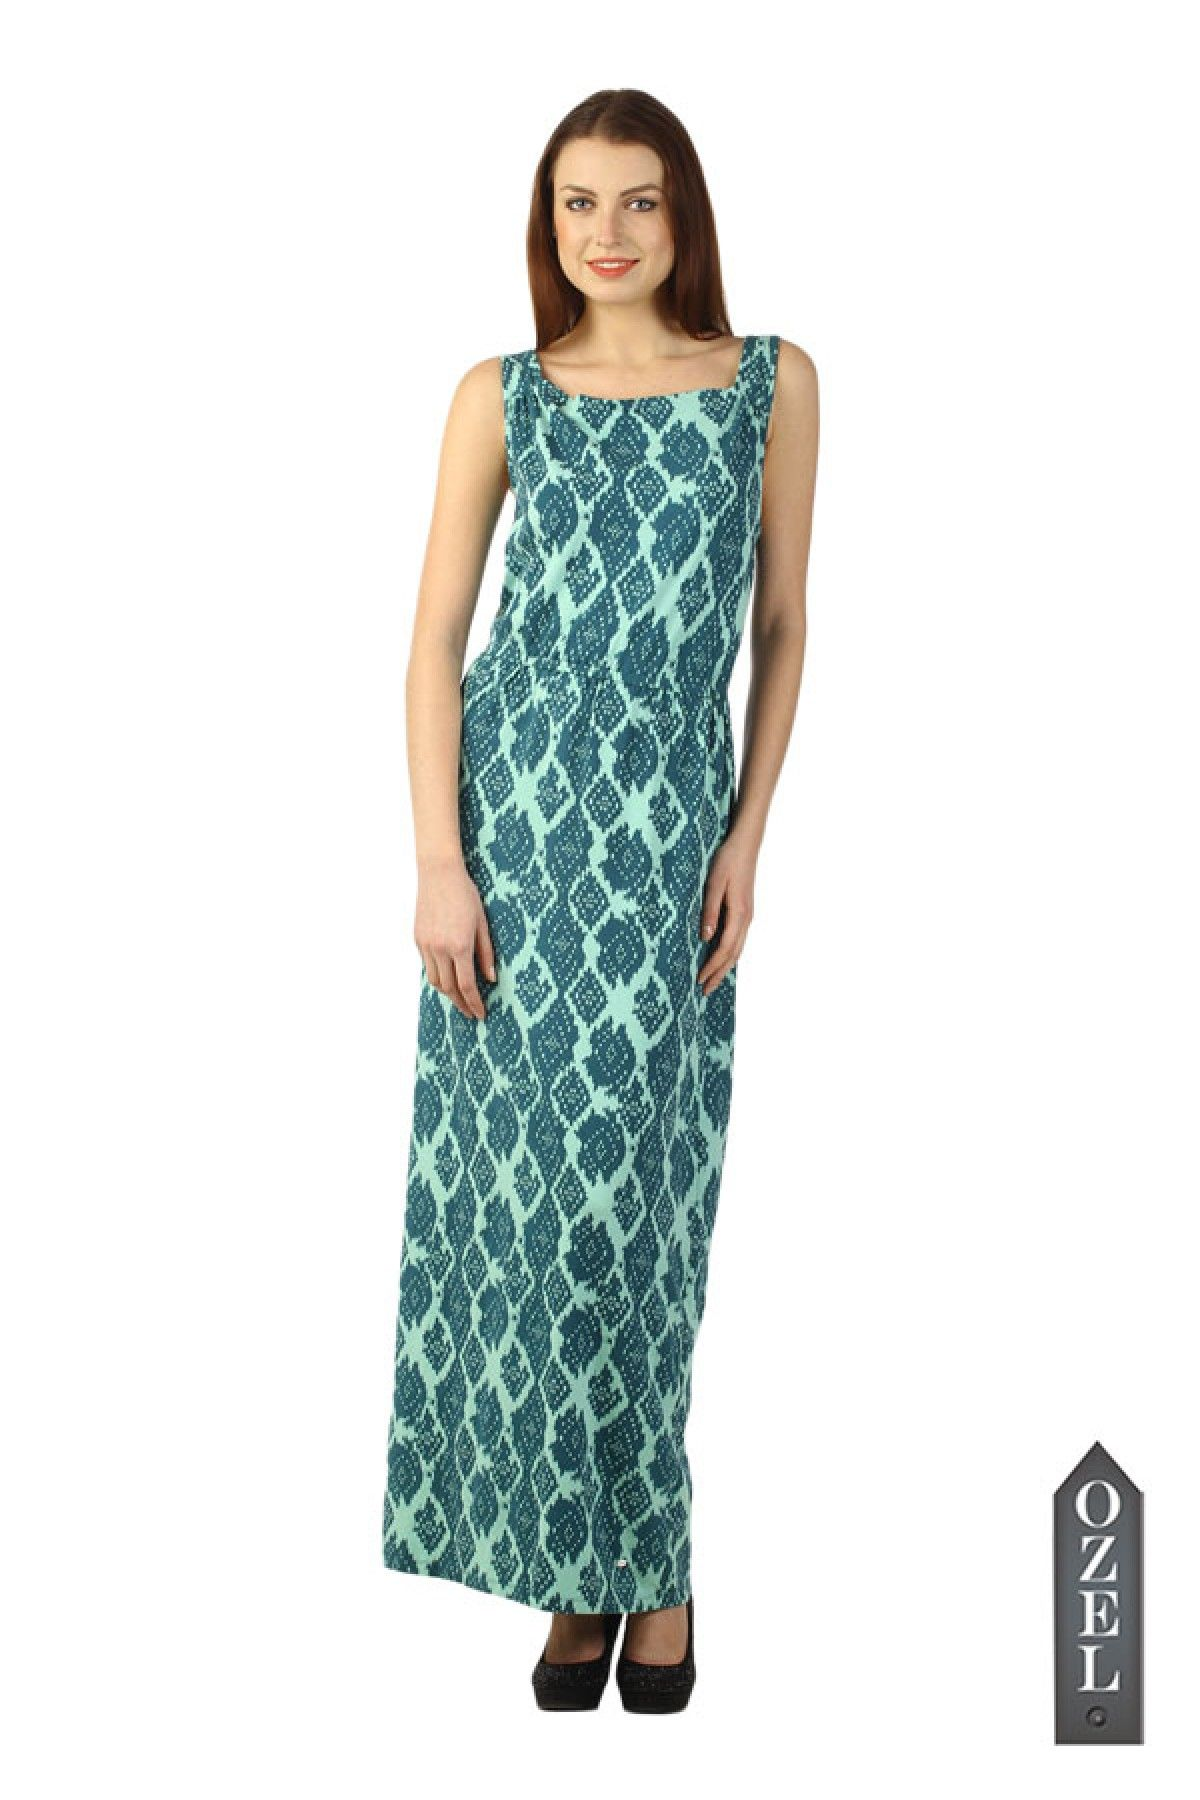 Blue Geometric Print Maxi Dress BY OZEL STUDIO | Love for Gowns ...